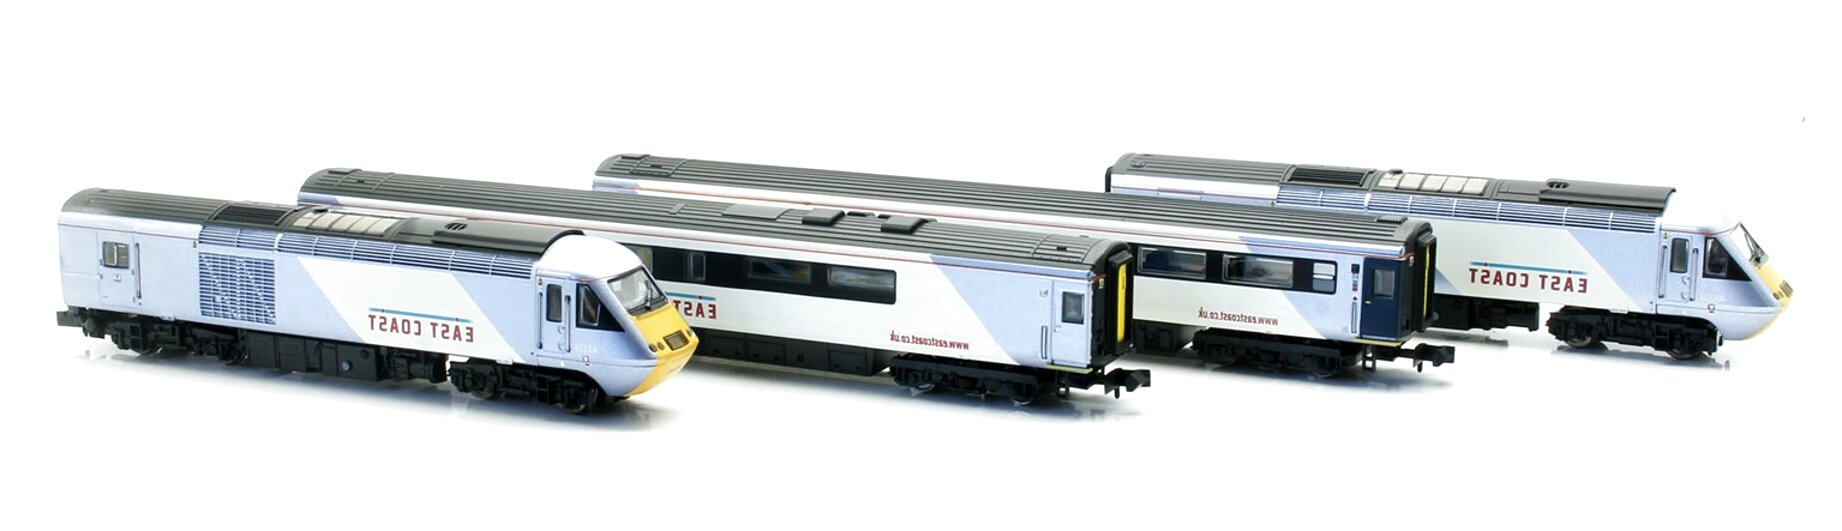 n gauge hst for sale